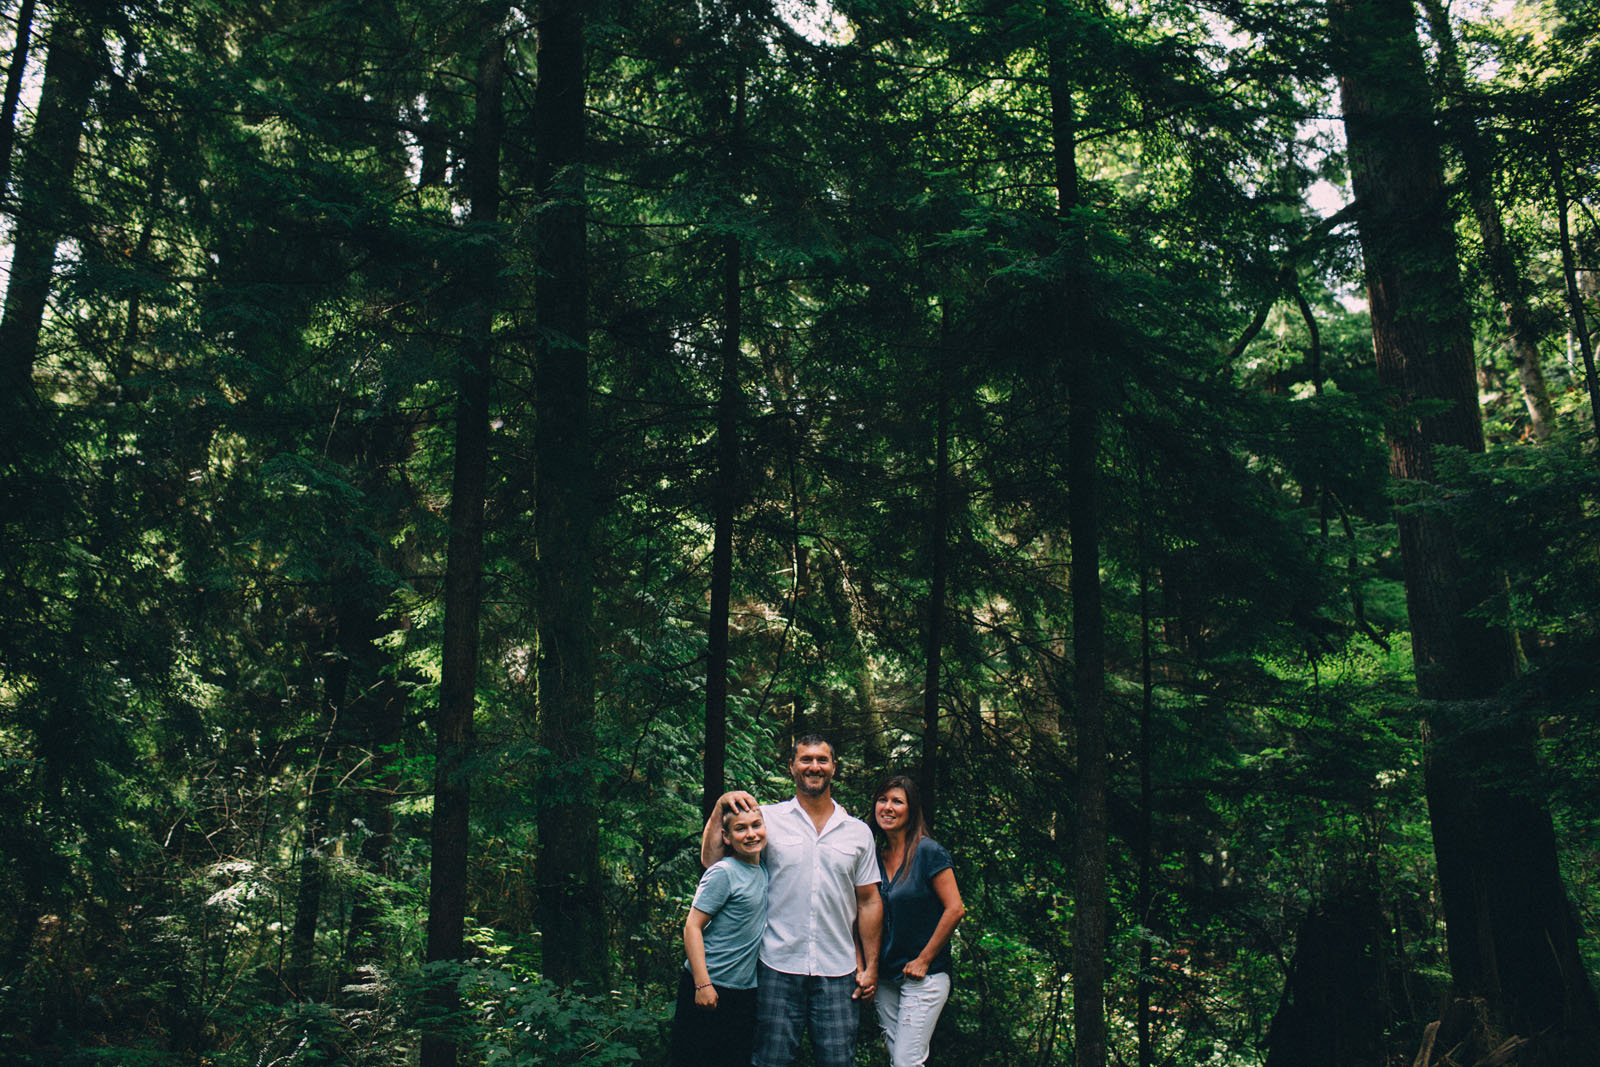 Stanley-Park-family-portrait-Vancouver-photographer-Sam-Wong-of-Visual-Cravings_01